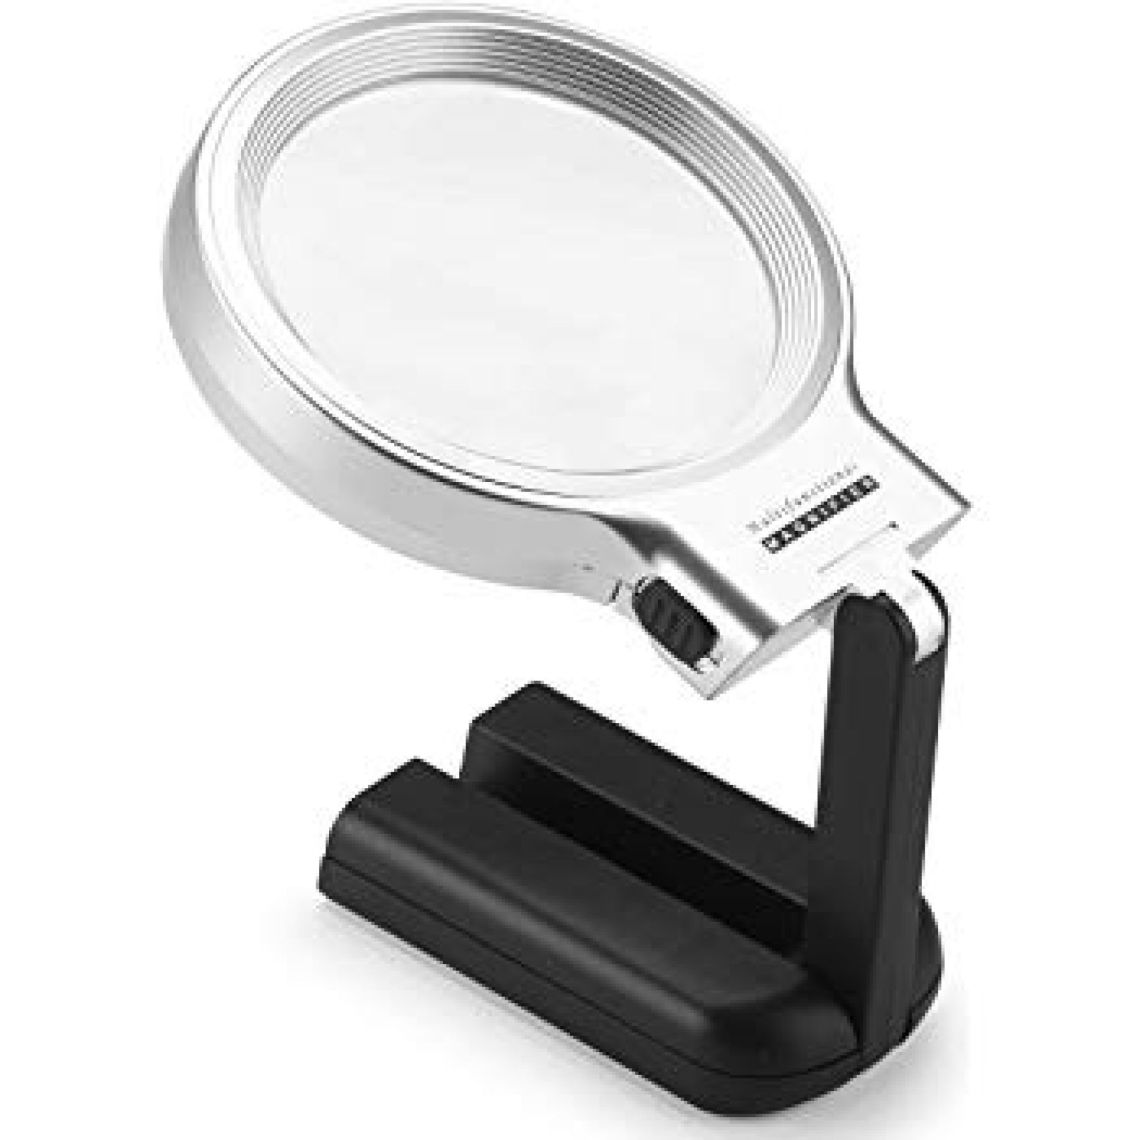 Amazon.com: LED Lighted Hands Free Magnifying Glass Light Stand Dicfeos- 3X 4.5X Large Handheld Illuminated Magnifier Reading, Inspection, Soldering, Needlework, Repair, Hobby & Crafts: Toys & Games